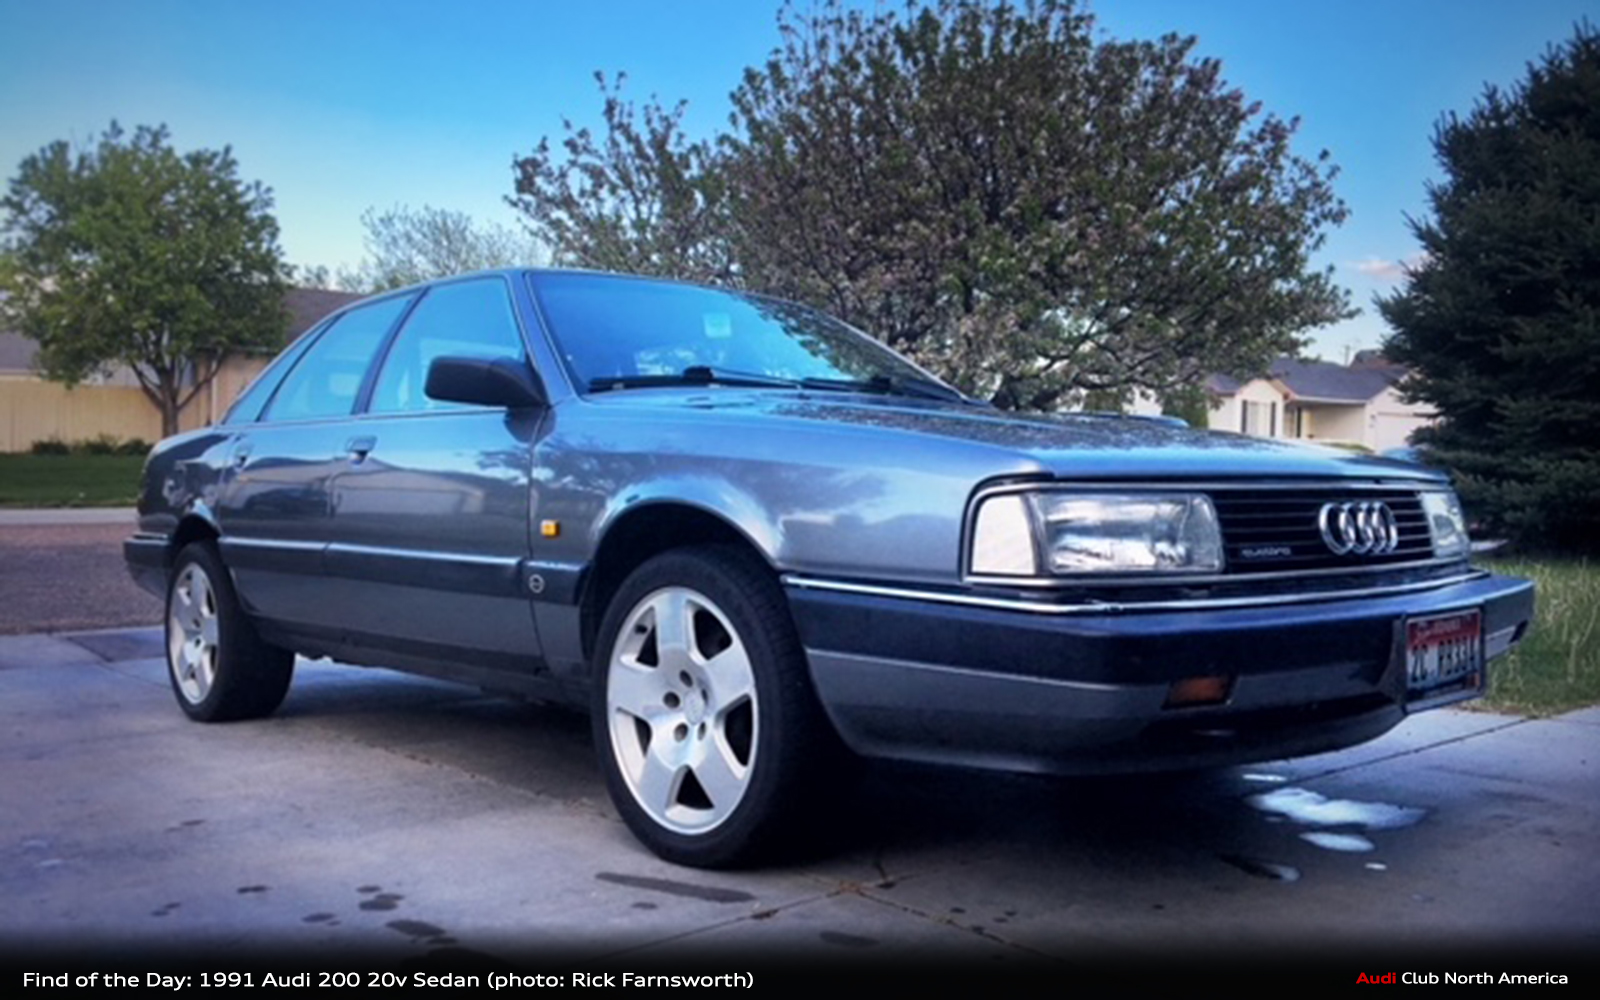 Find of the Day: 1991 Audi 200 20v Sedan